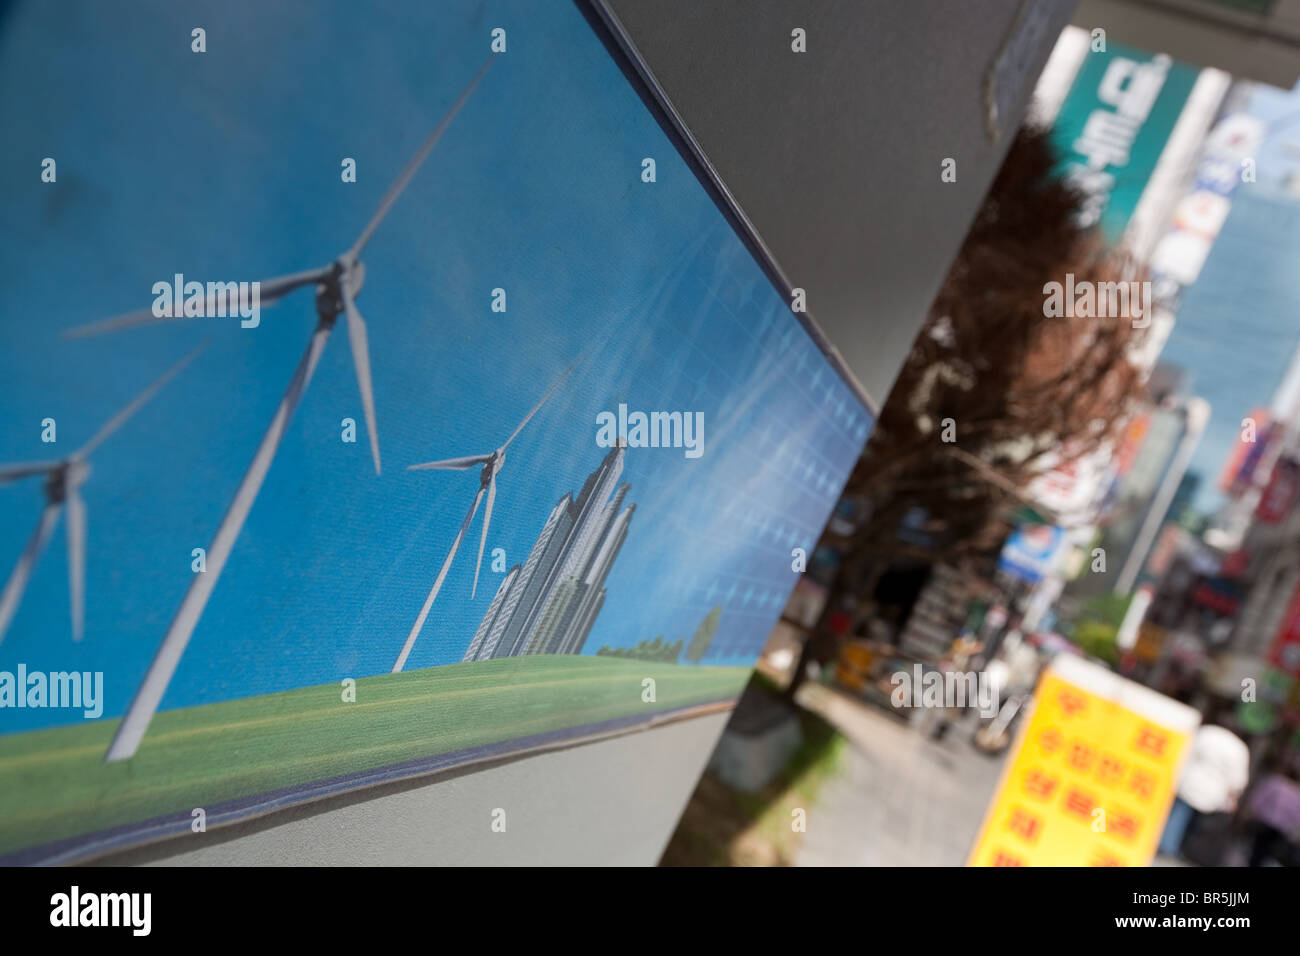 Poster advertising green renewable sustainable wind power energy in Seoul, South Korea, Friday 27th August 2010. - Stock Image